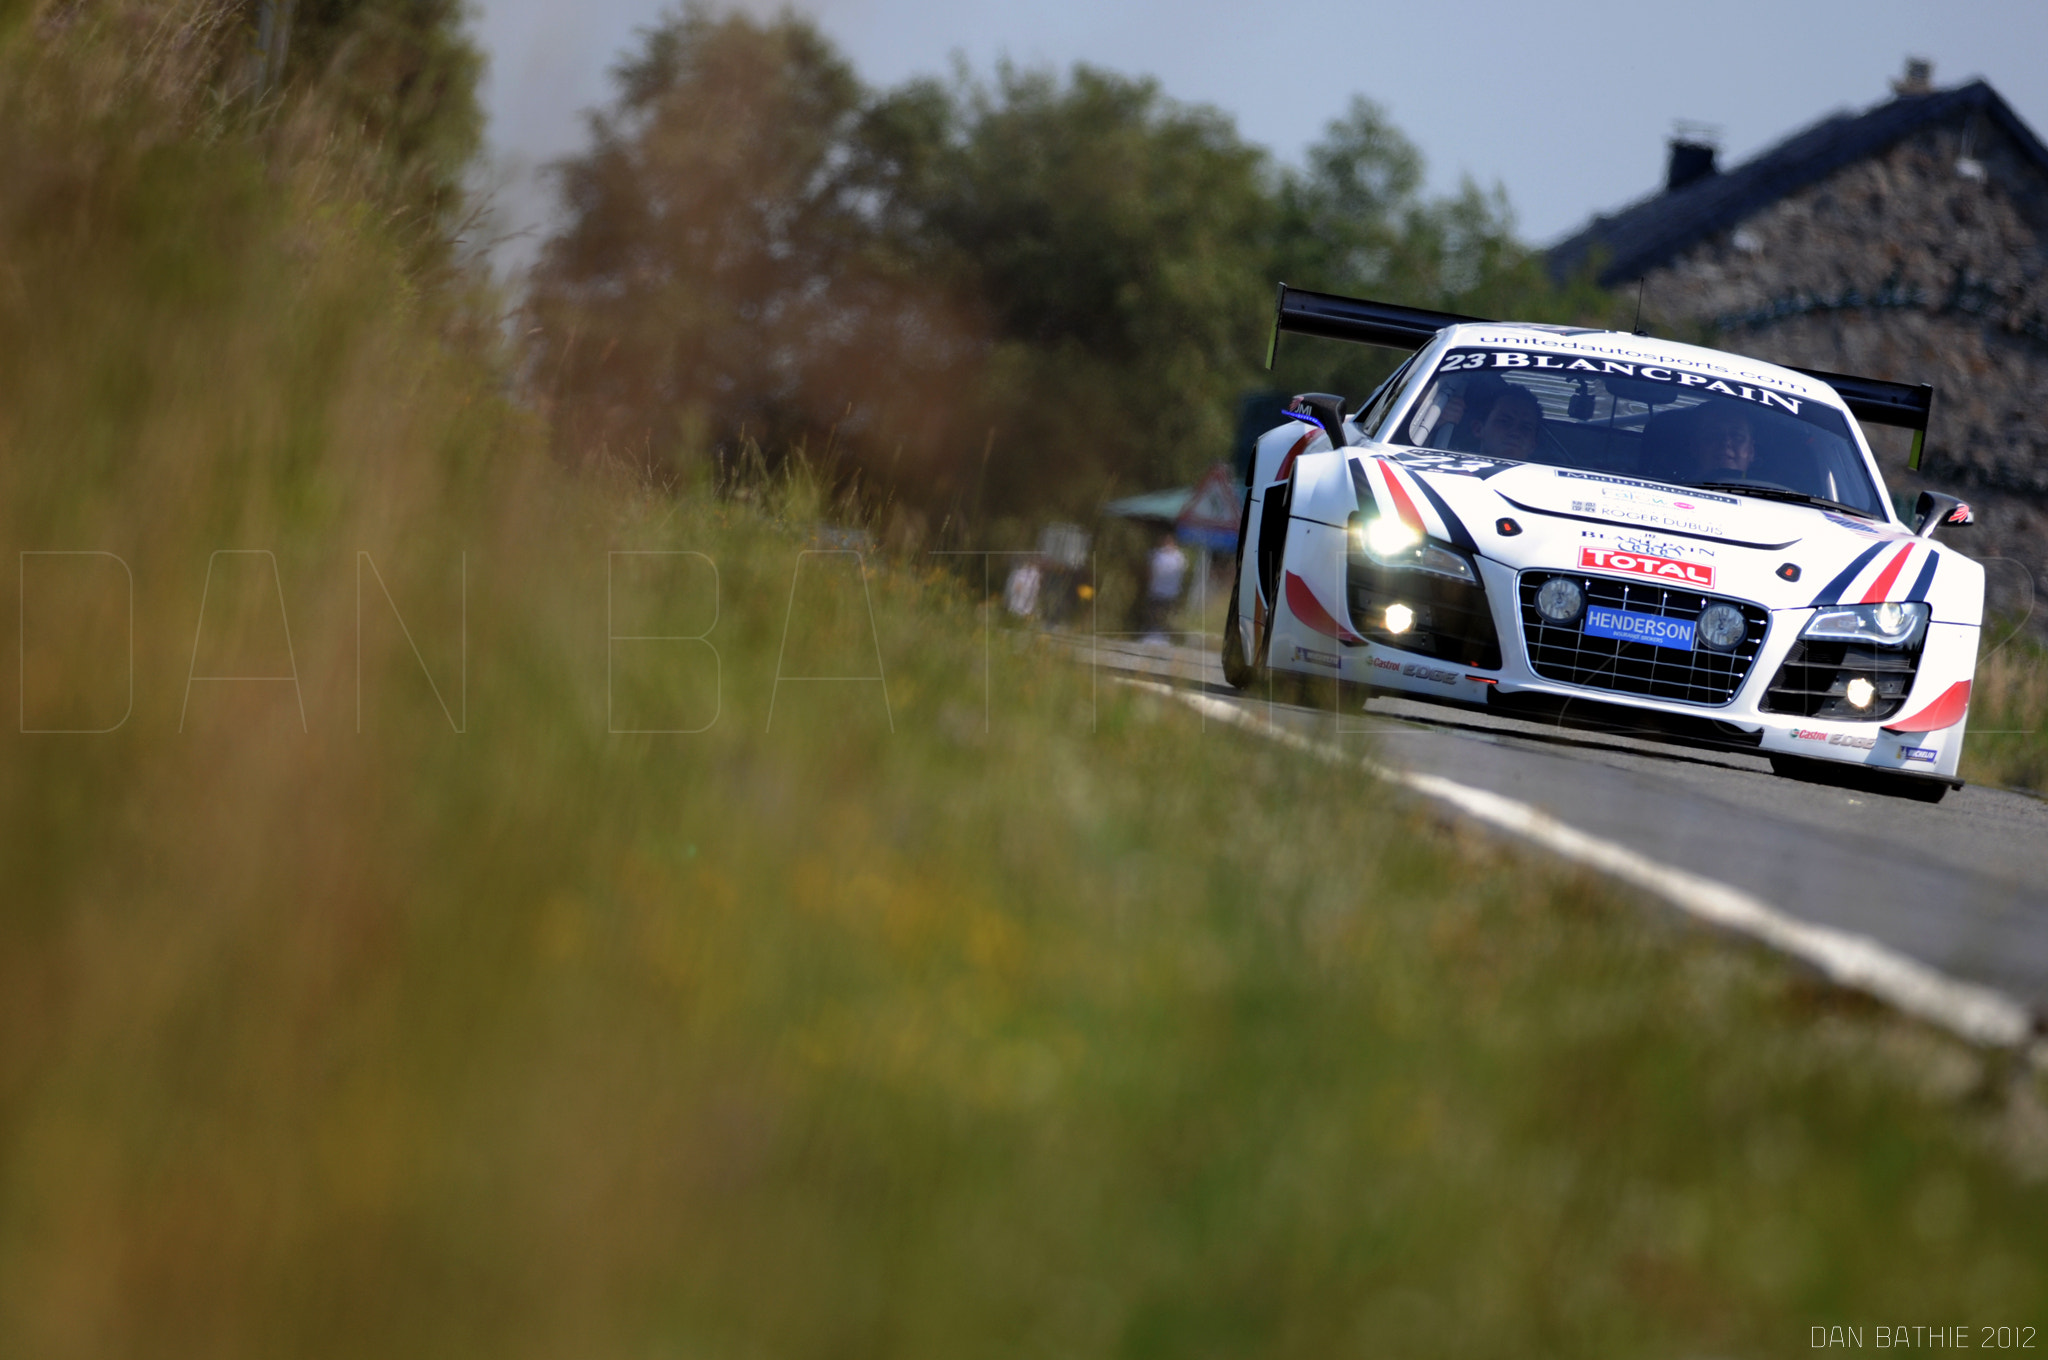 Photograph United Autosports - Spa 24 Hours 2012 by Dan Bathie on 500px